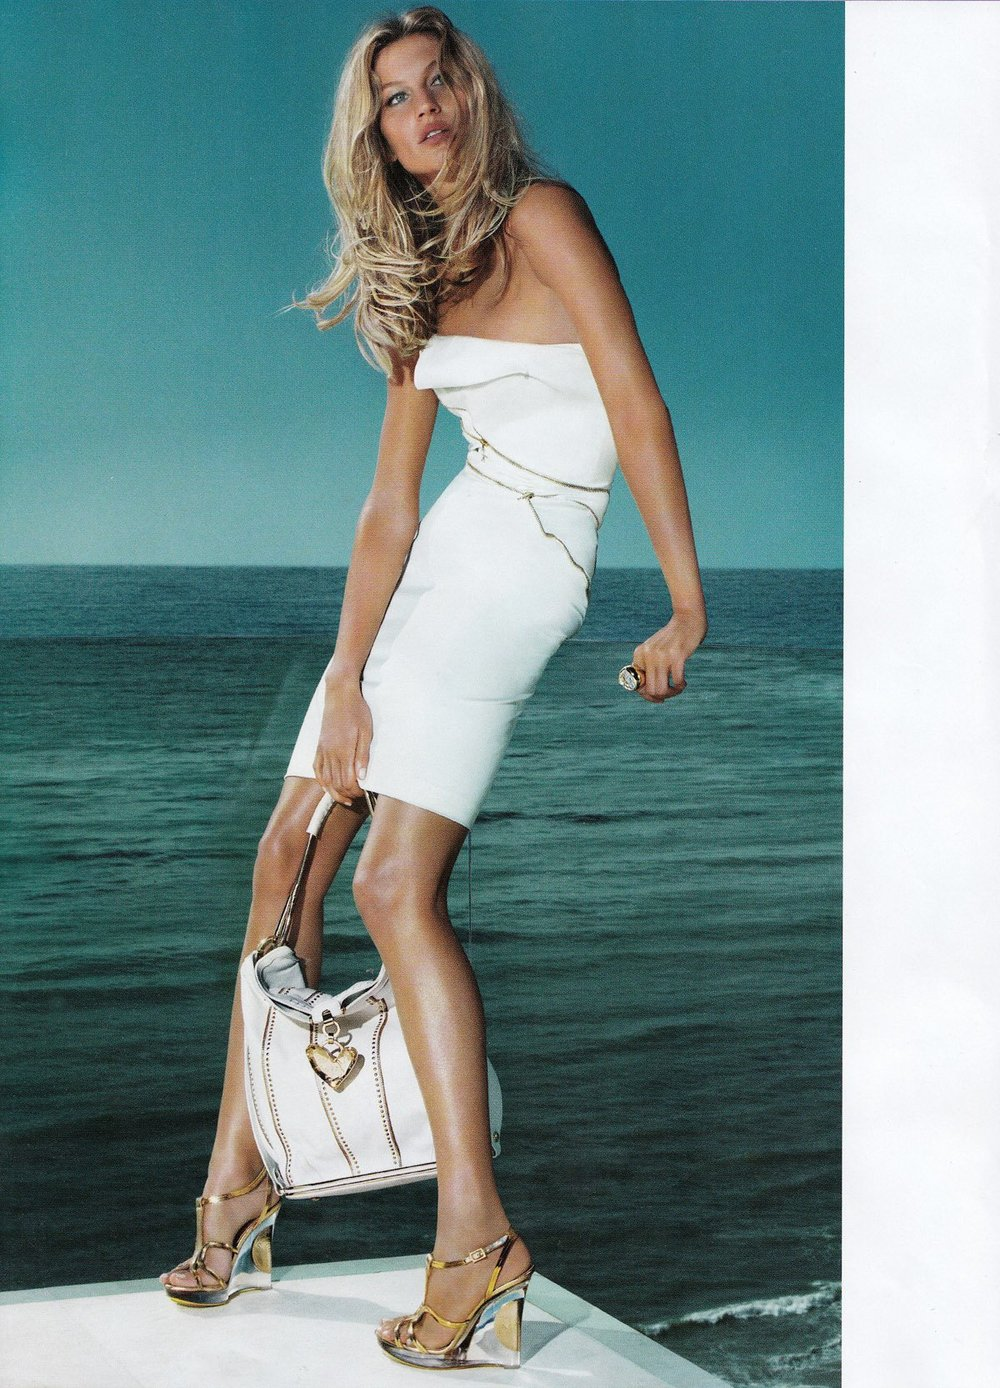 Kate-Moss-Gisele-Bundchen-Star-Versace-Spring-2009-Ad-Campaign-1.jpg